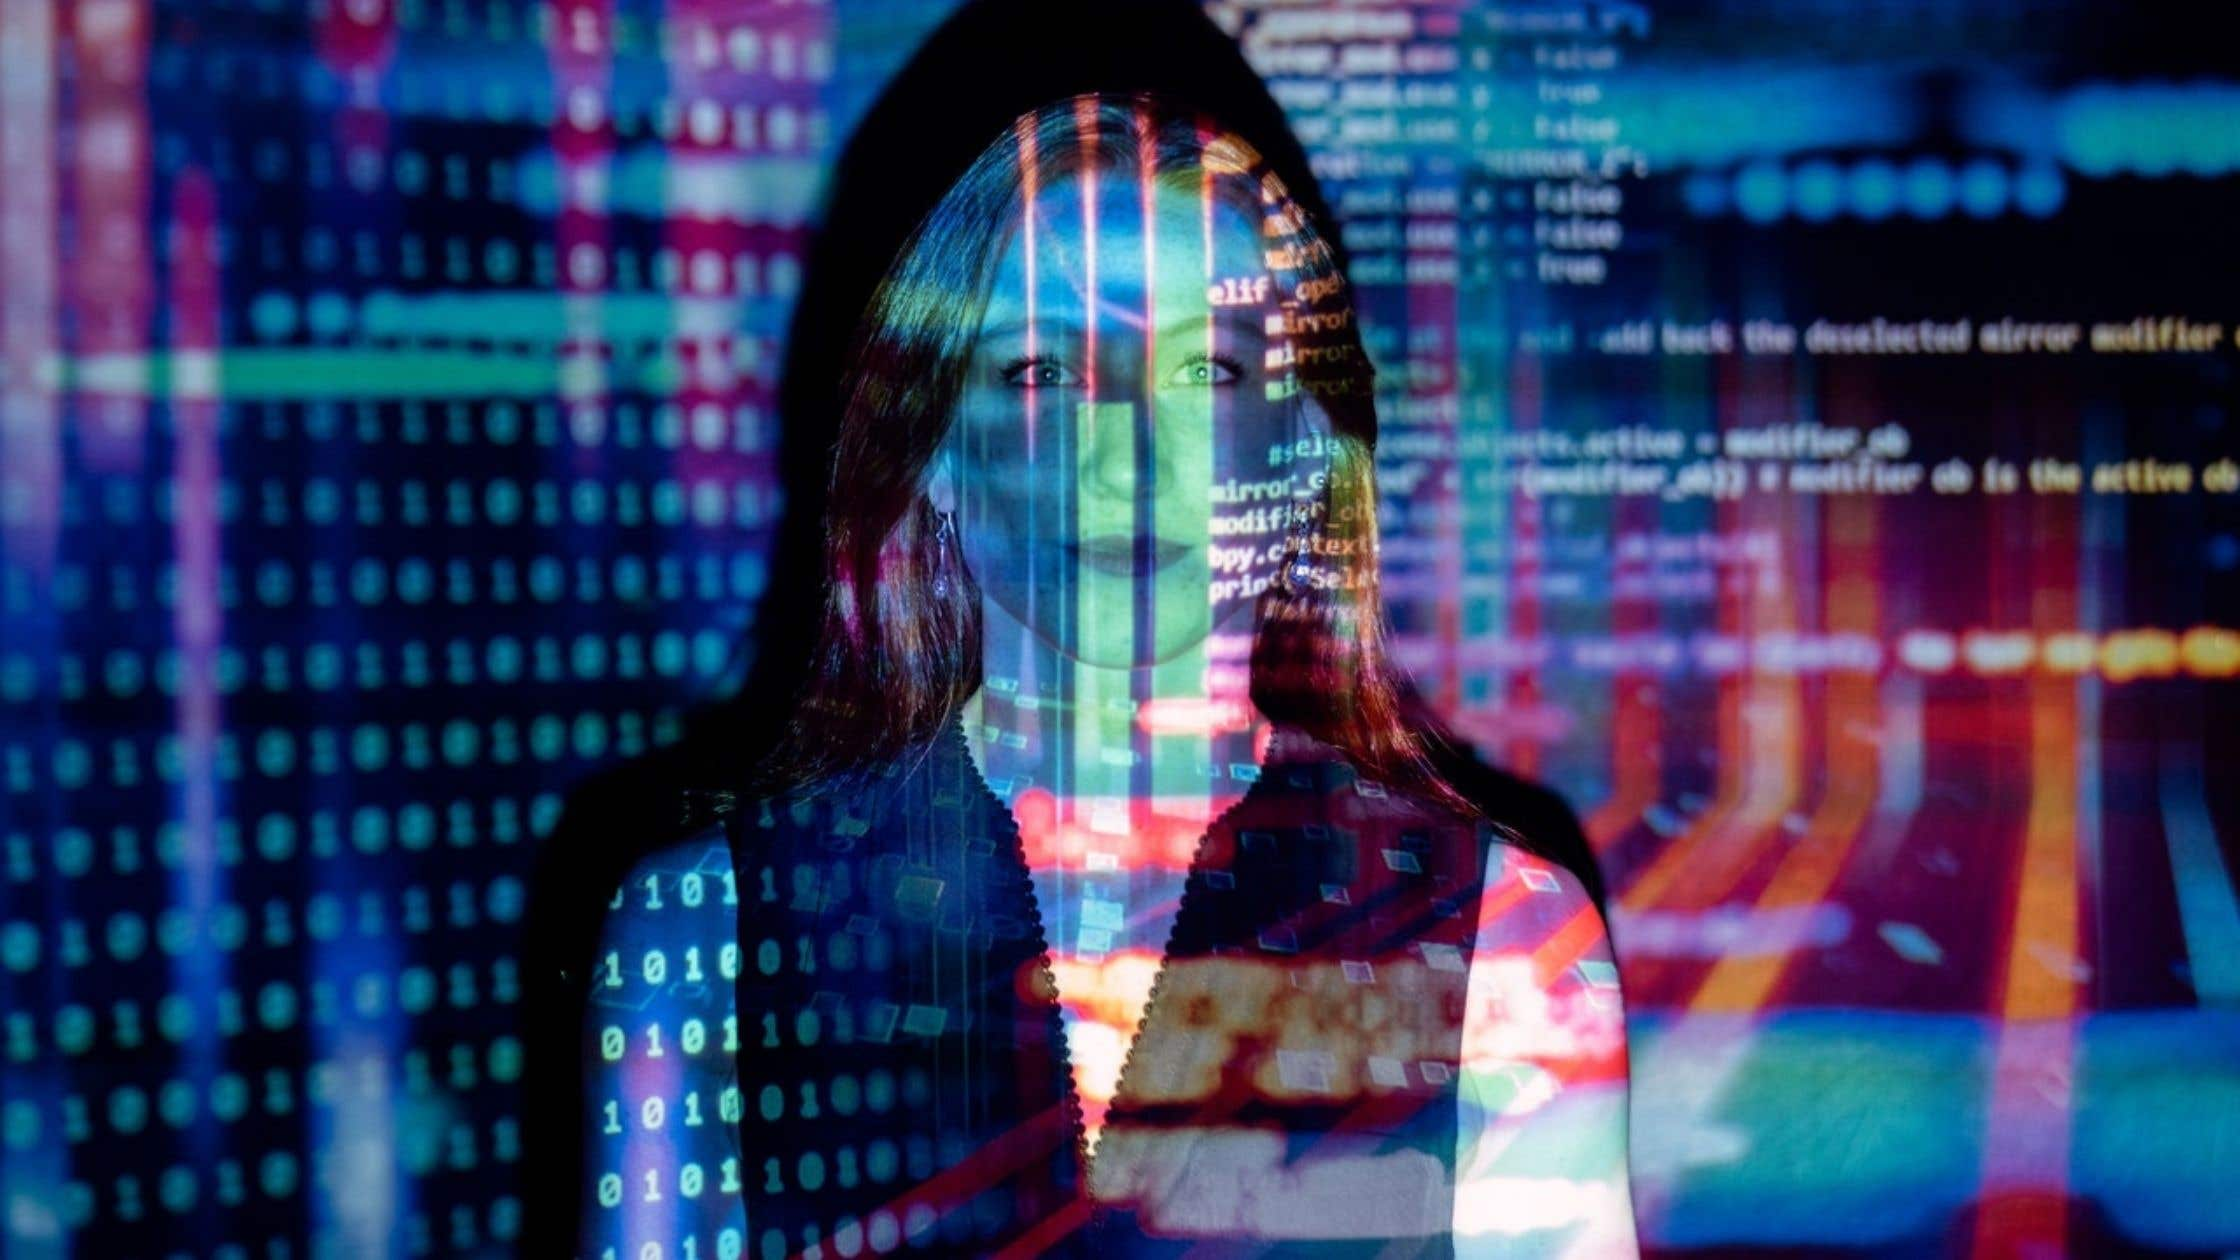 code projected onto woman